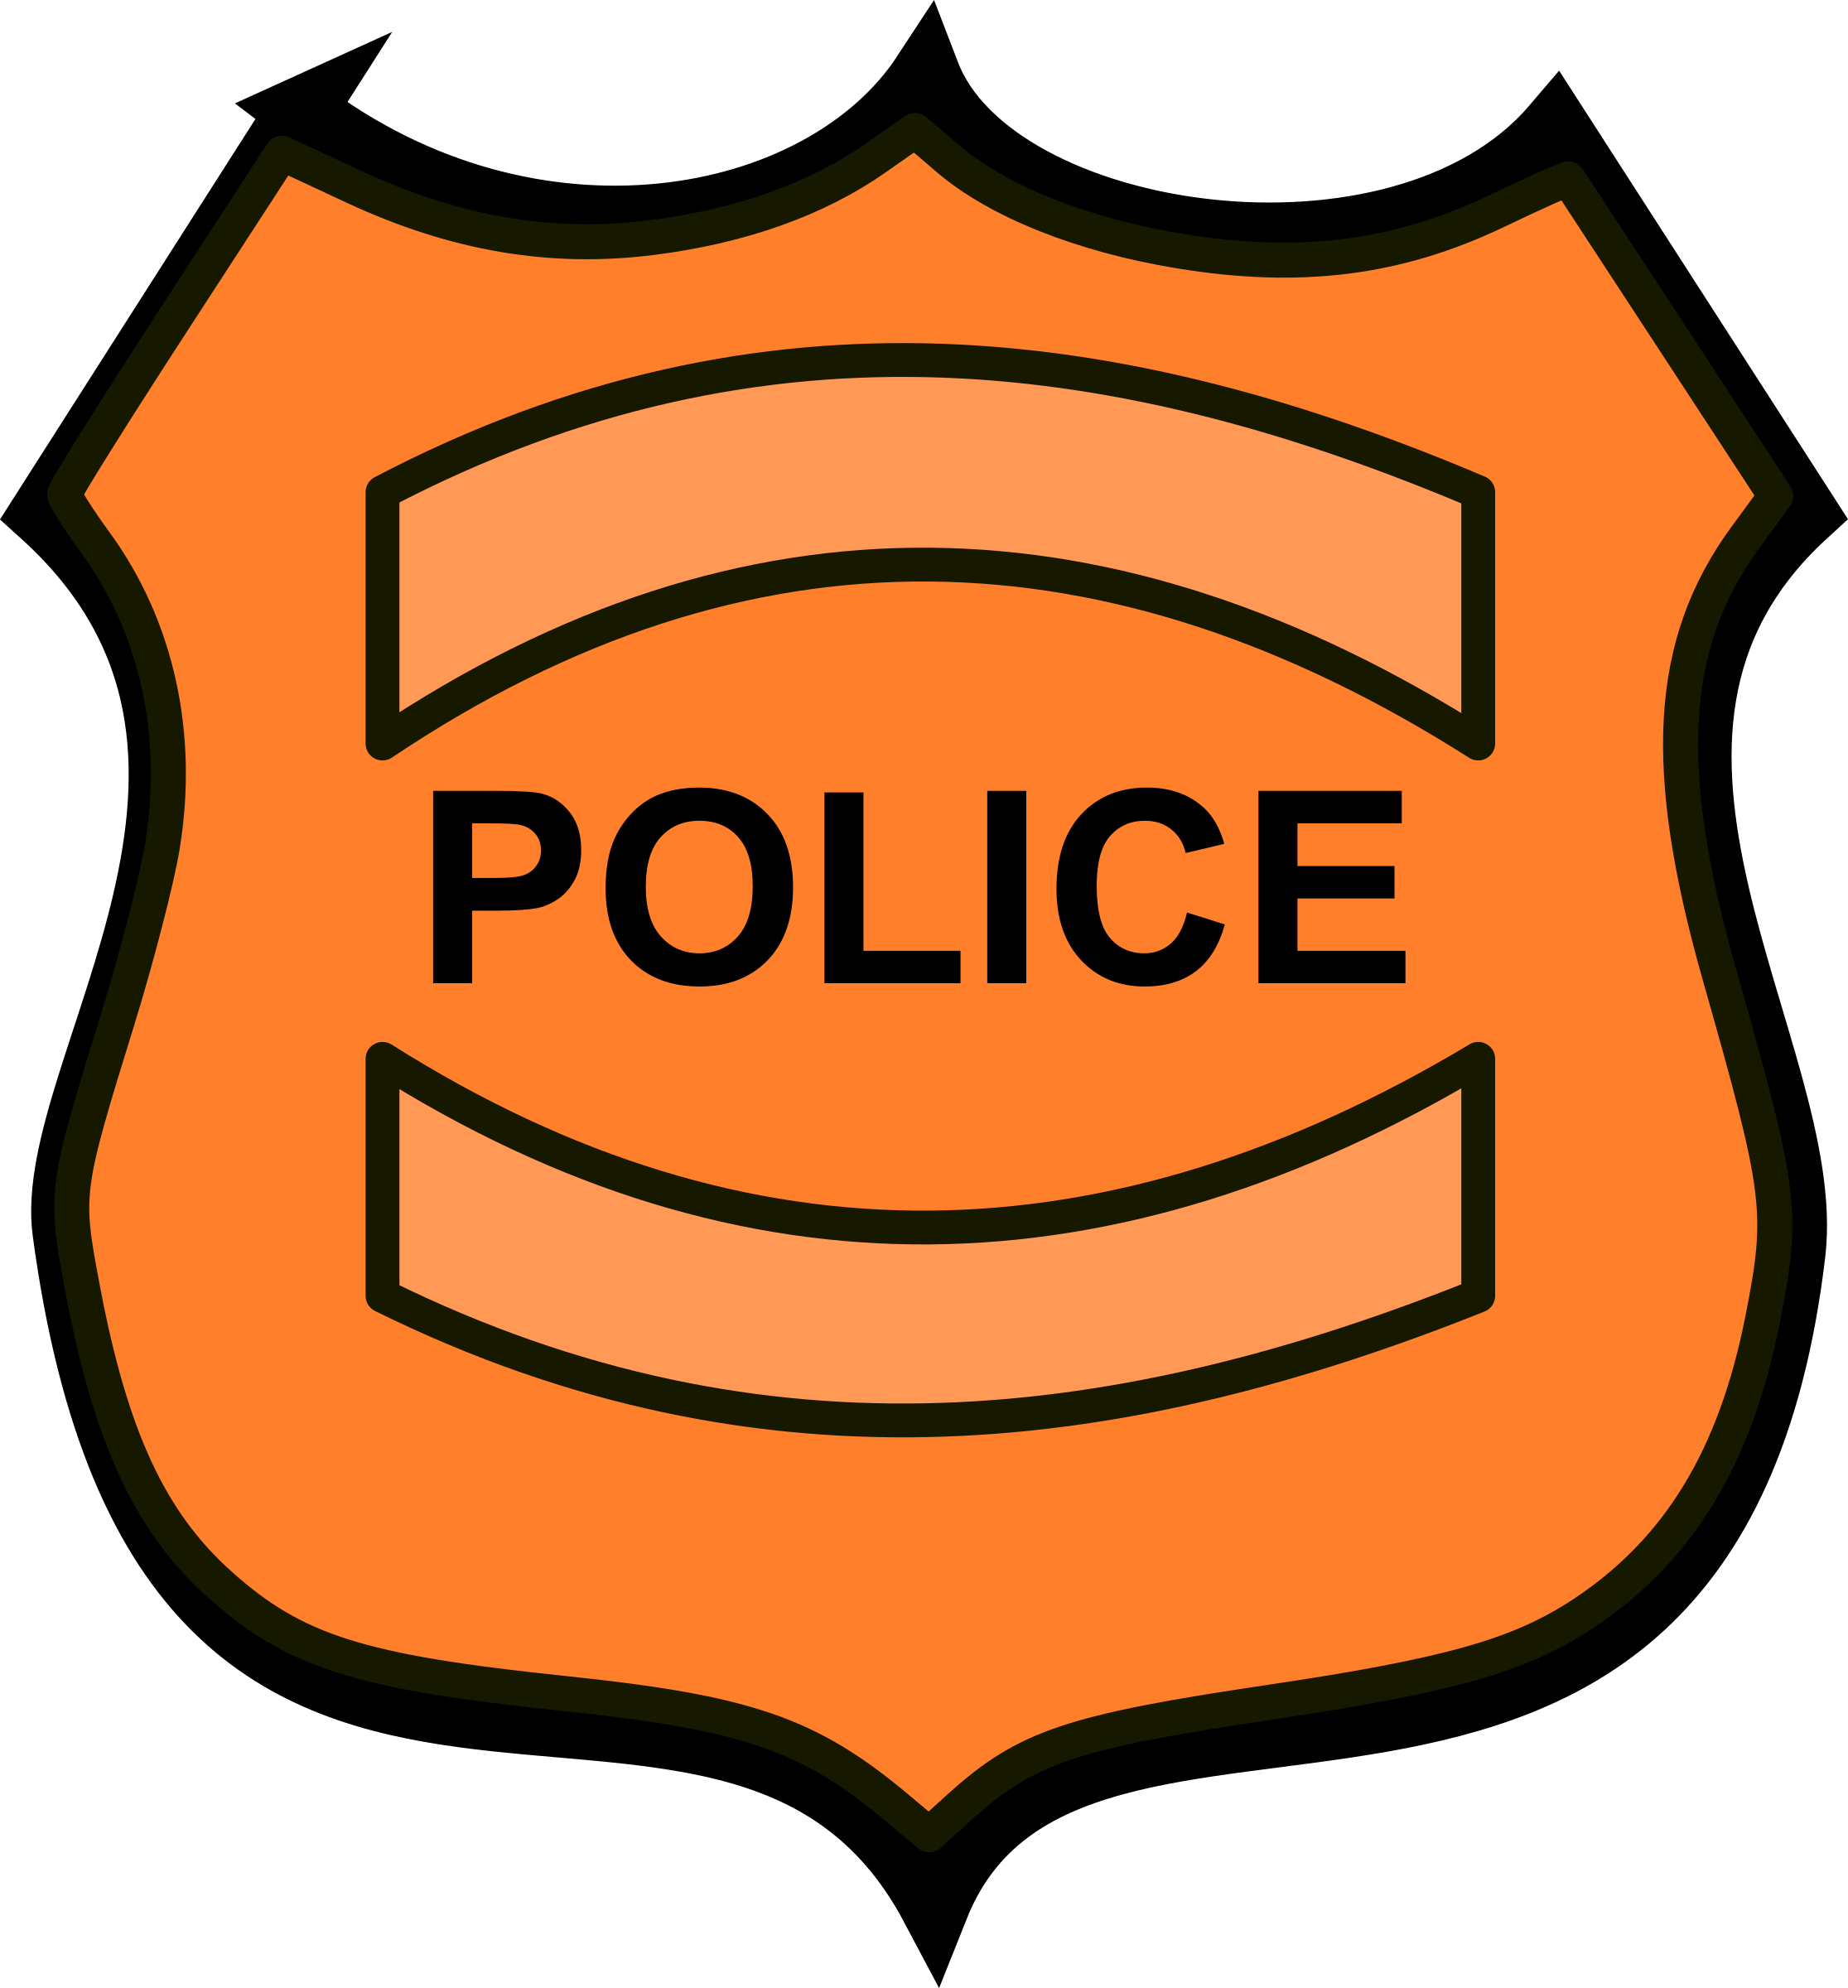 Badge clipart academic. Police big image png